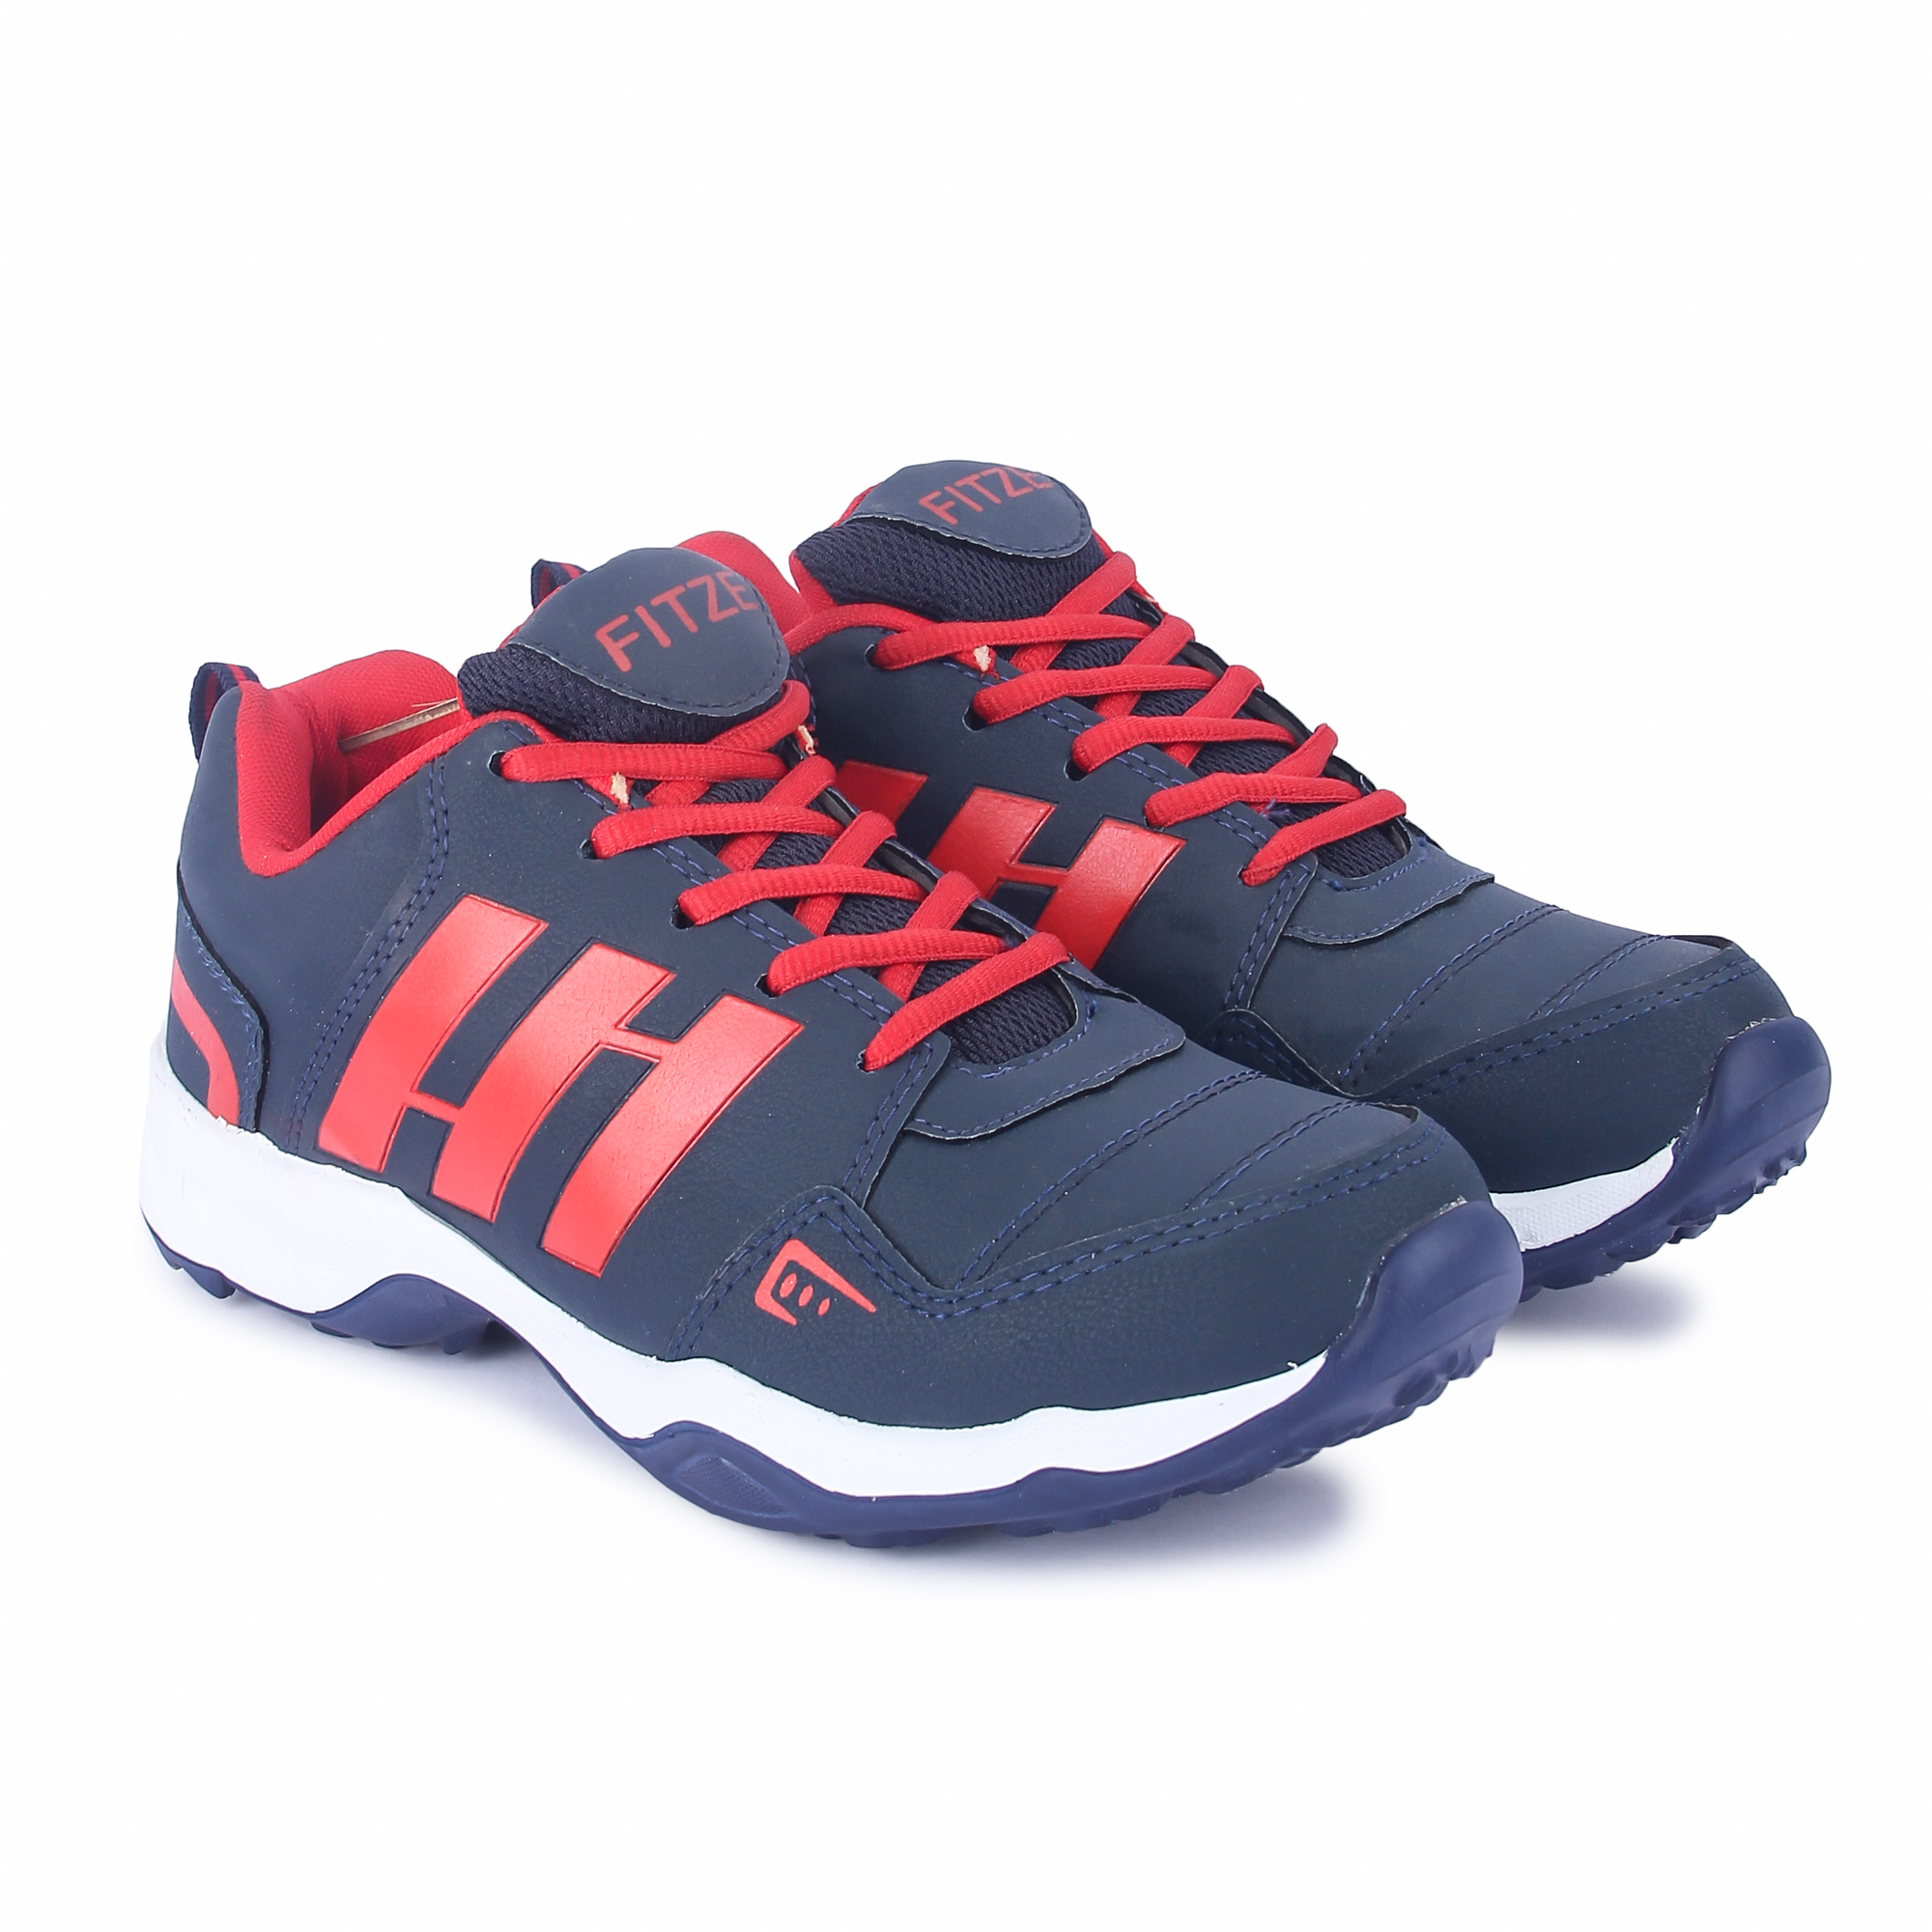 Fitze | HOX_535_NAVY_RED